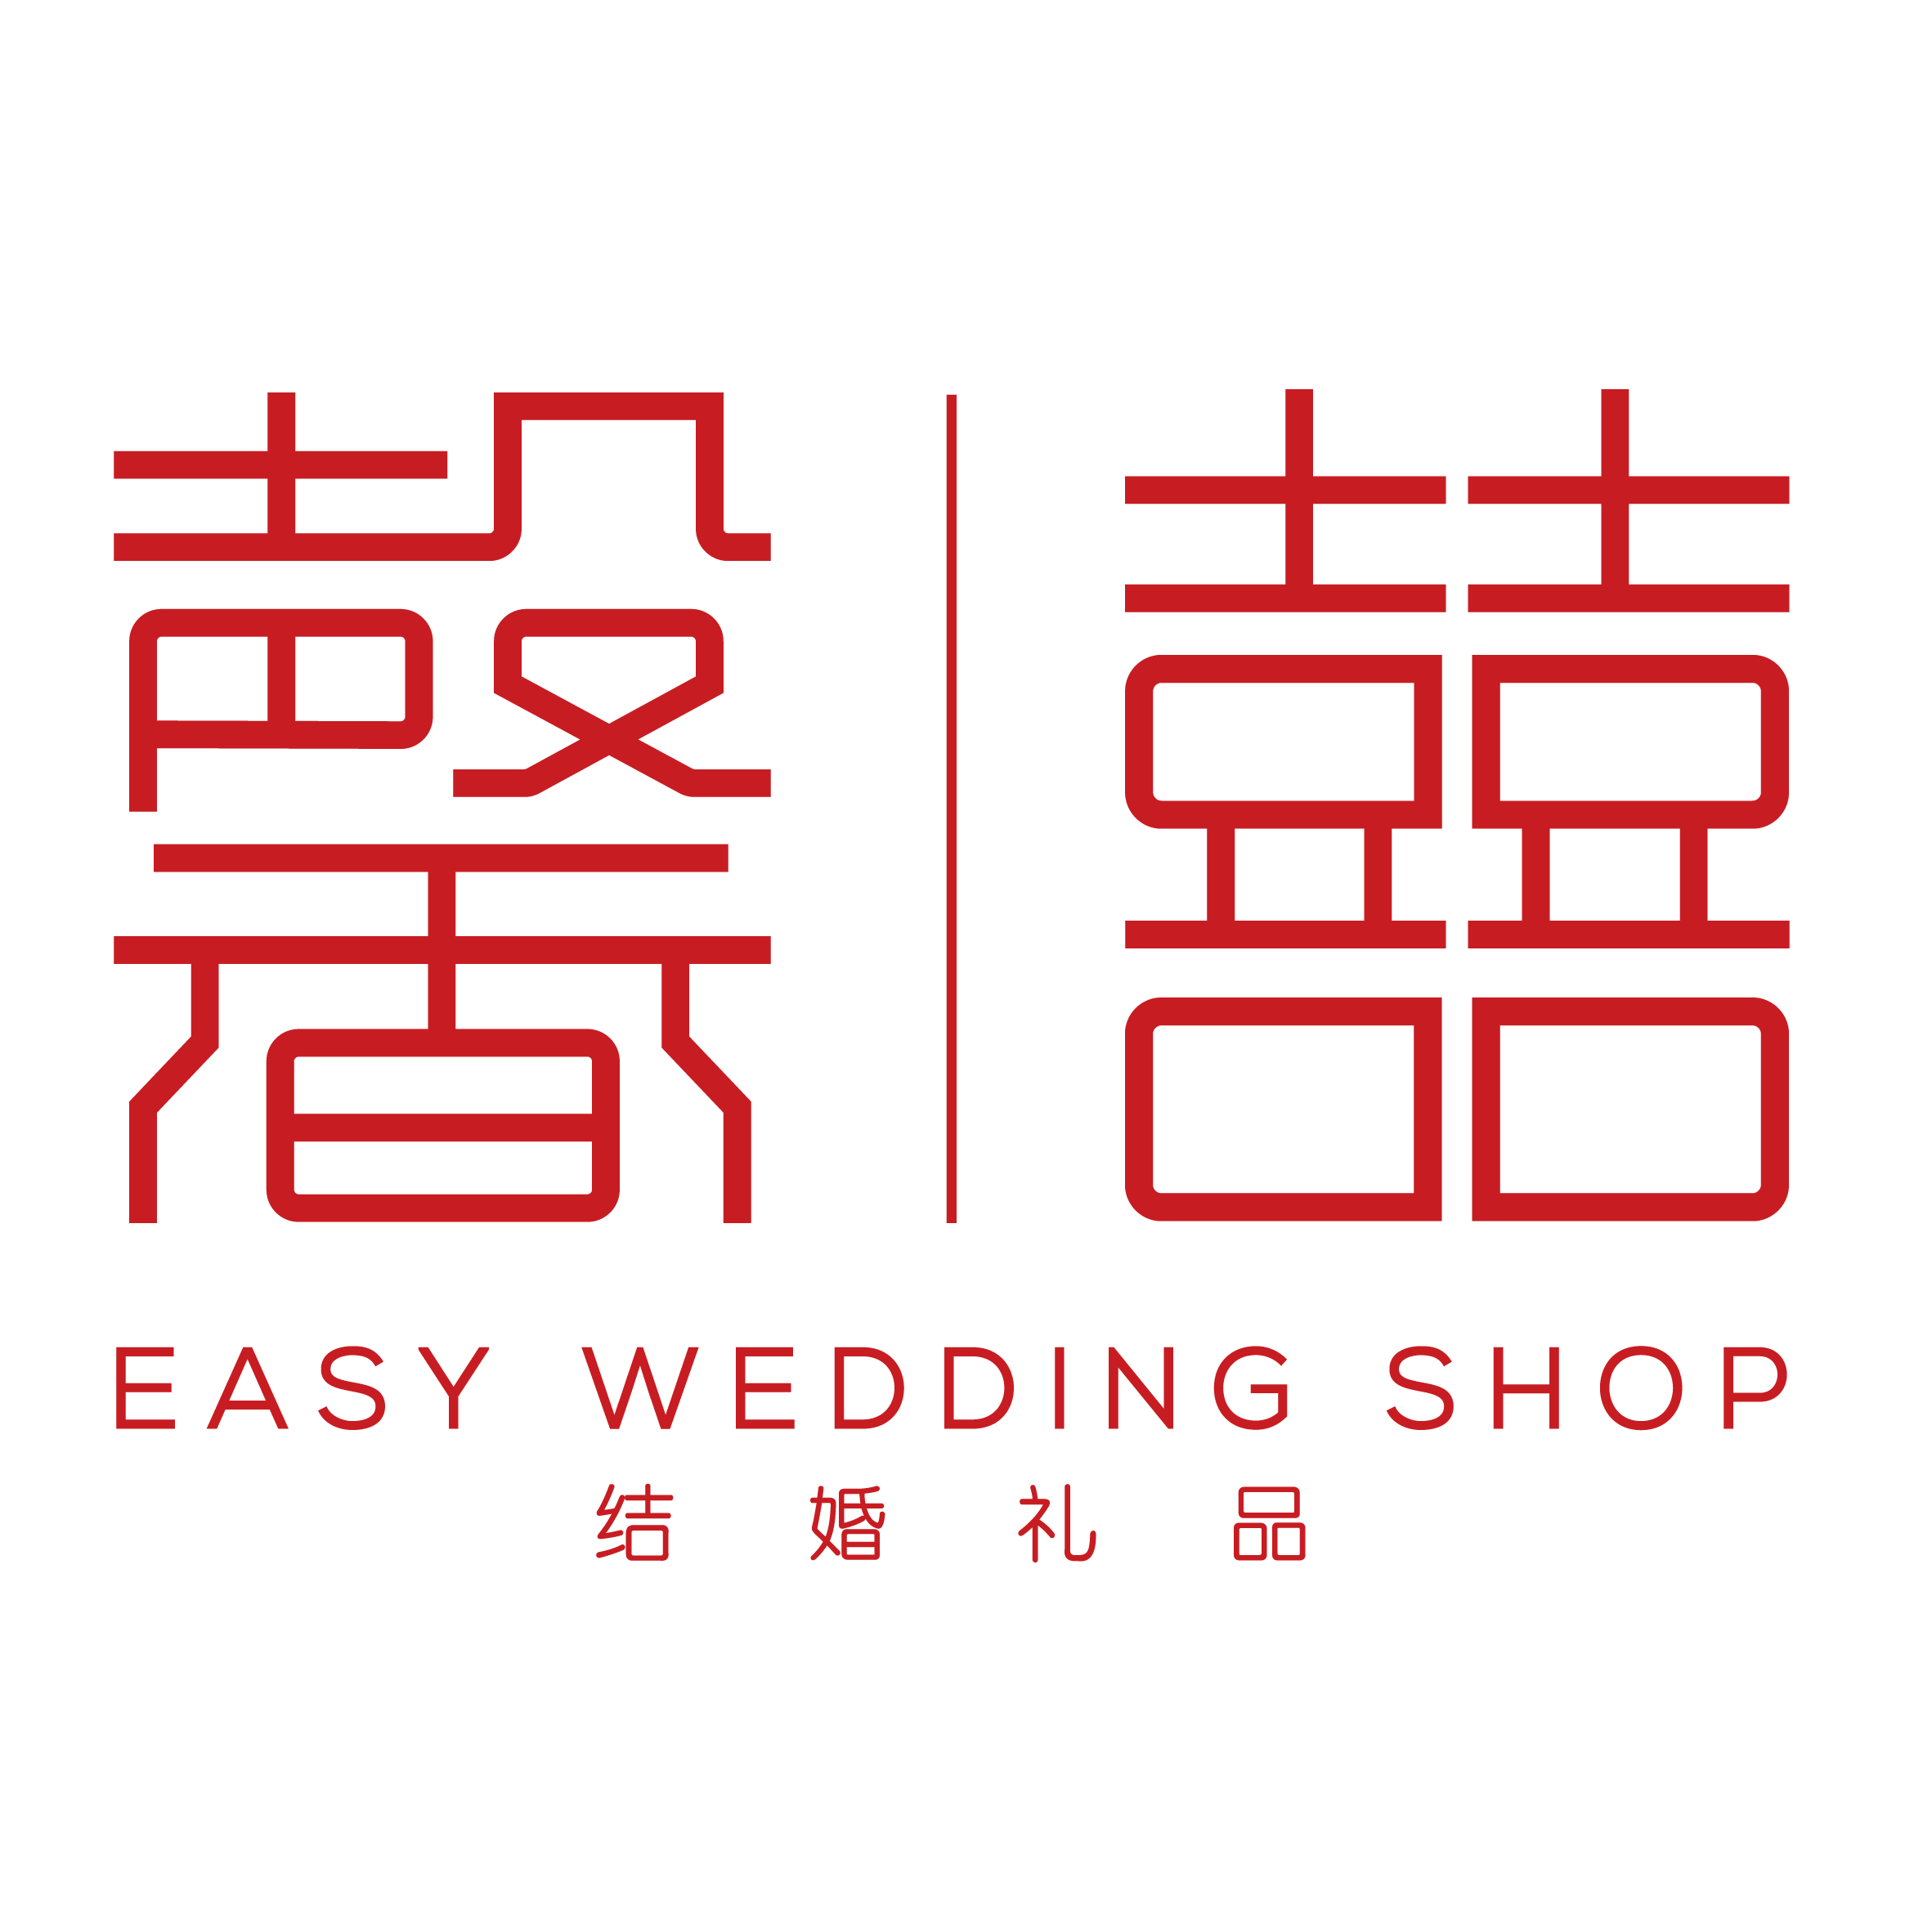 Easy Wedding Shop